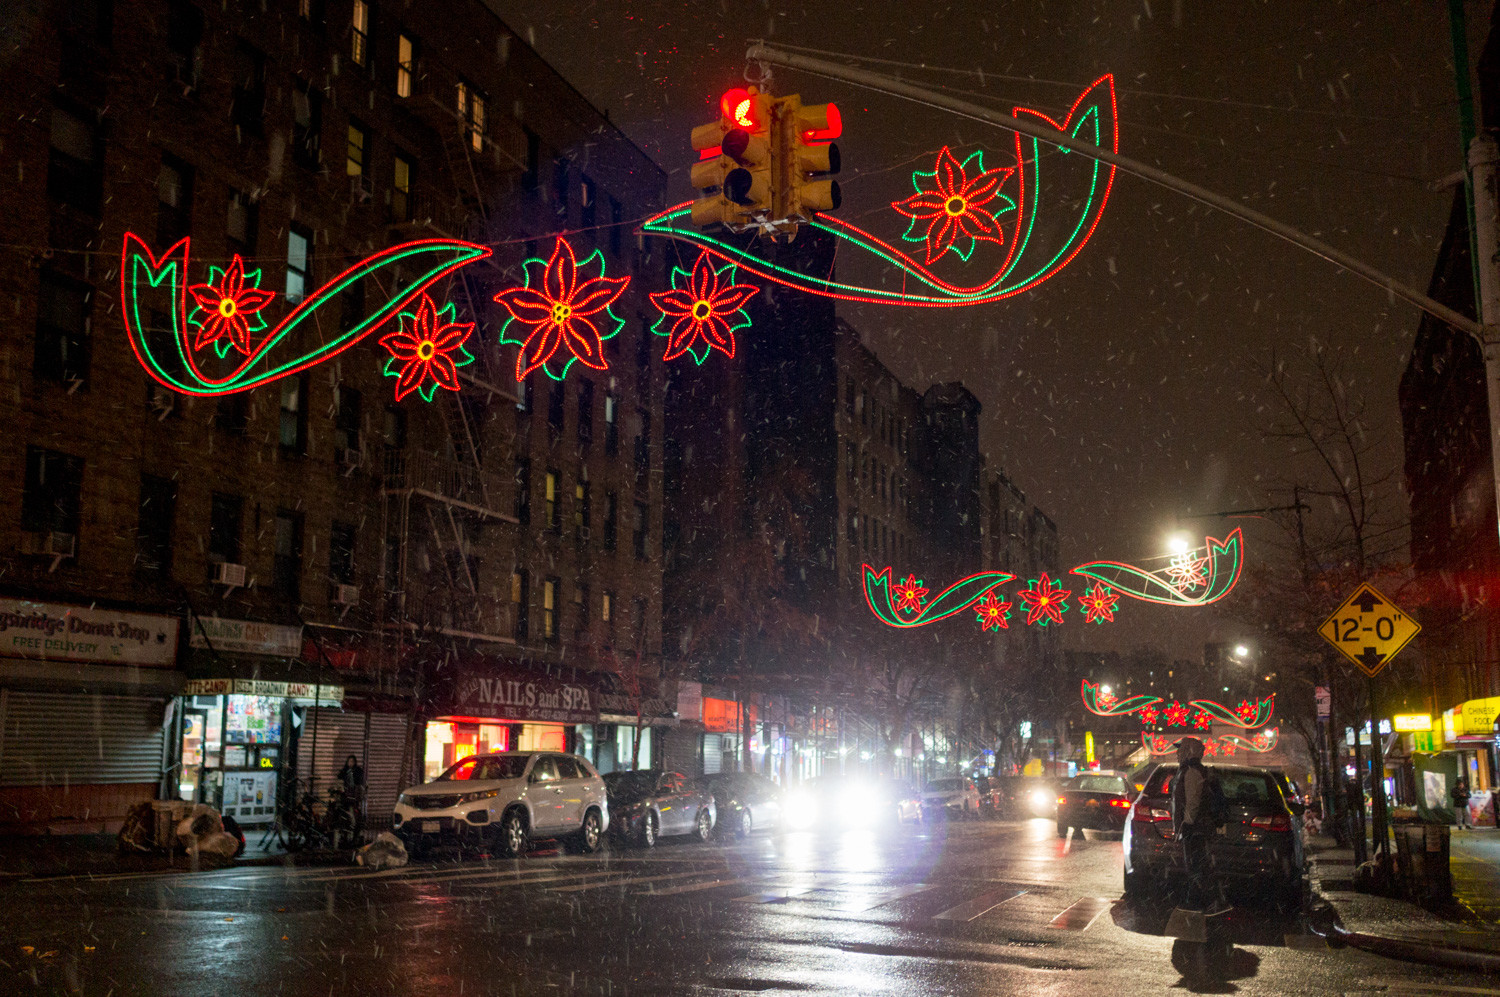 Holiday light displays line West 231st Street, and cast a warm glow after hours.